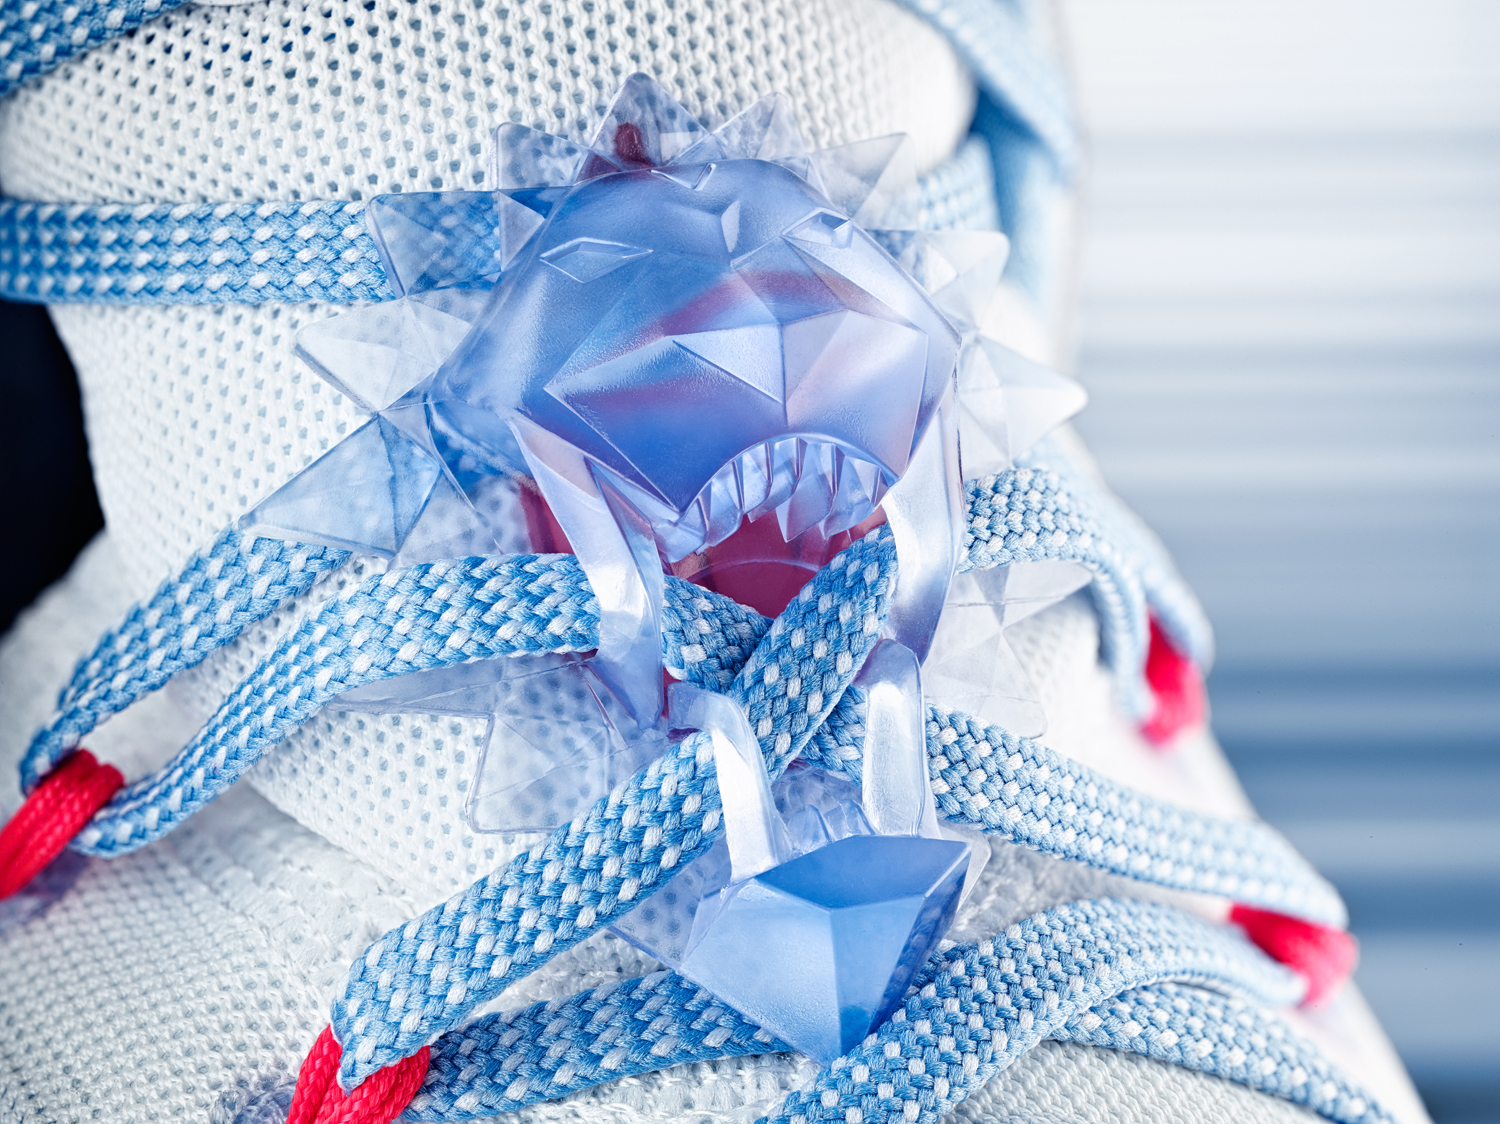 Nike LeBron 13 \'Christmas\' Embraces the Midwest Winter | Sole Collector